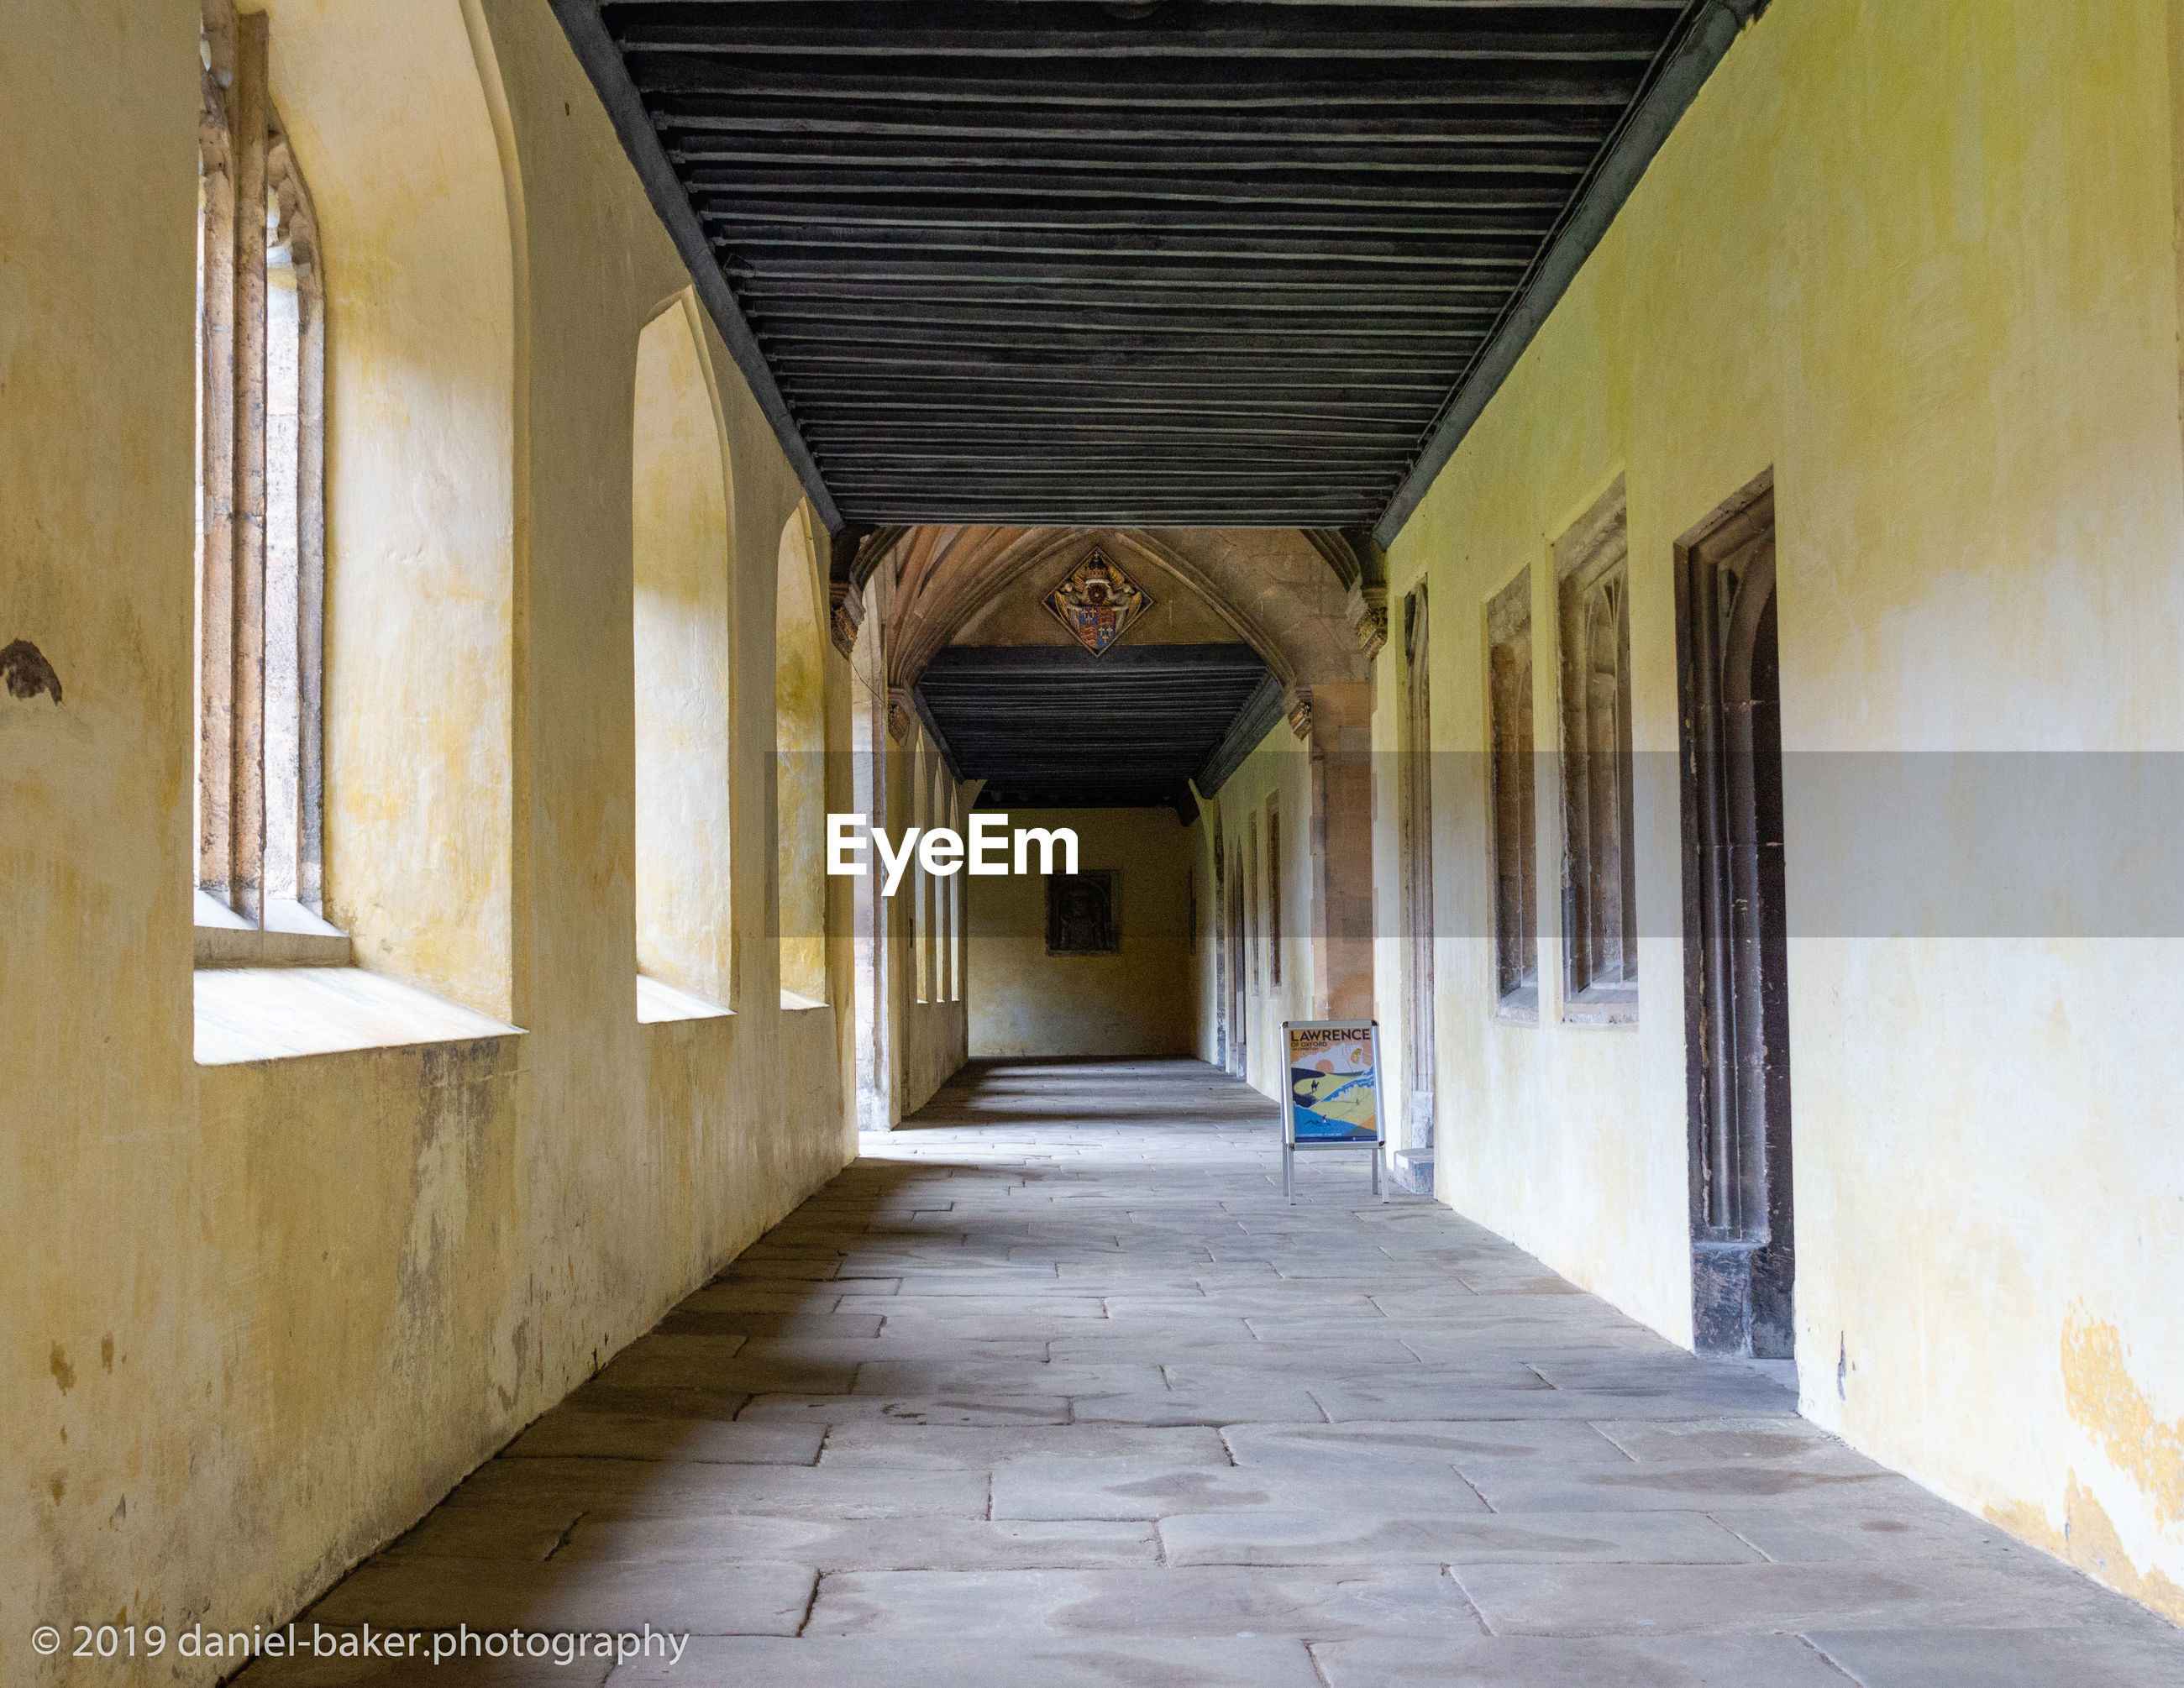 architecture, built structure, building, the way forward, direction, arcade, corridor, no people, day, building exterior, empty, entrance, arch, door, outdoors, flooring, diminishing perspective, house, ceiling, colonnade, alley